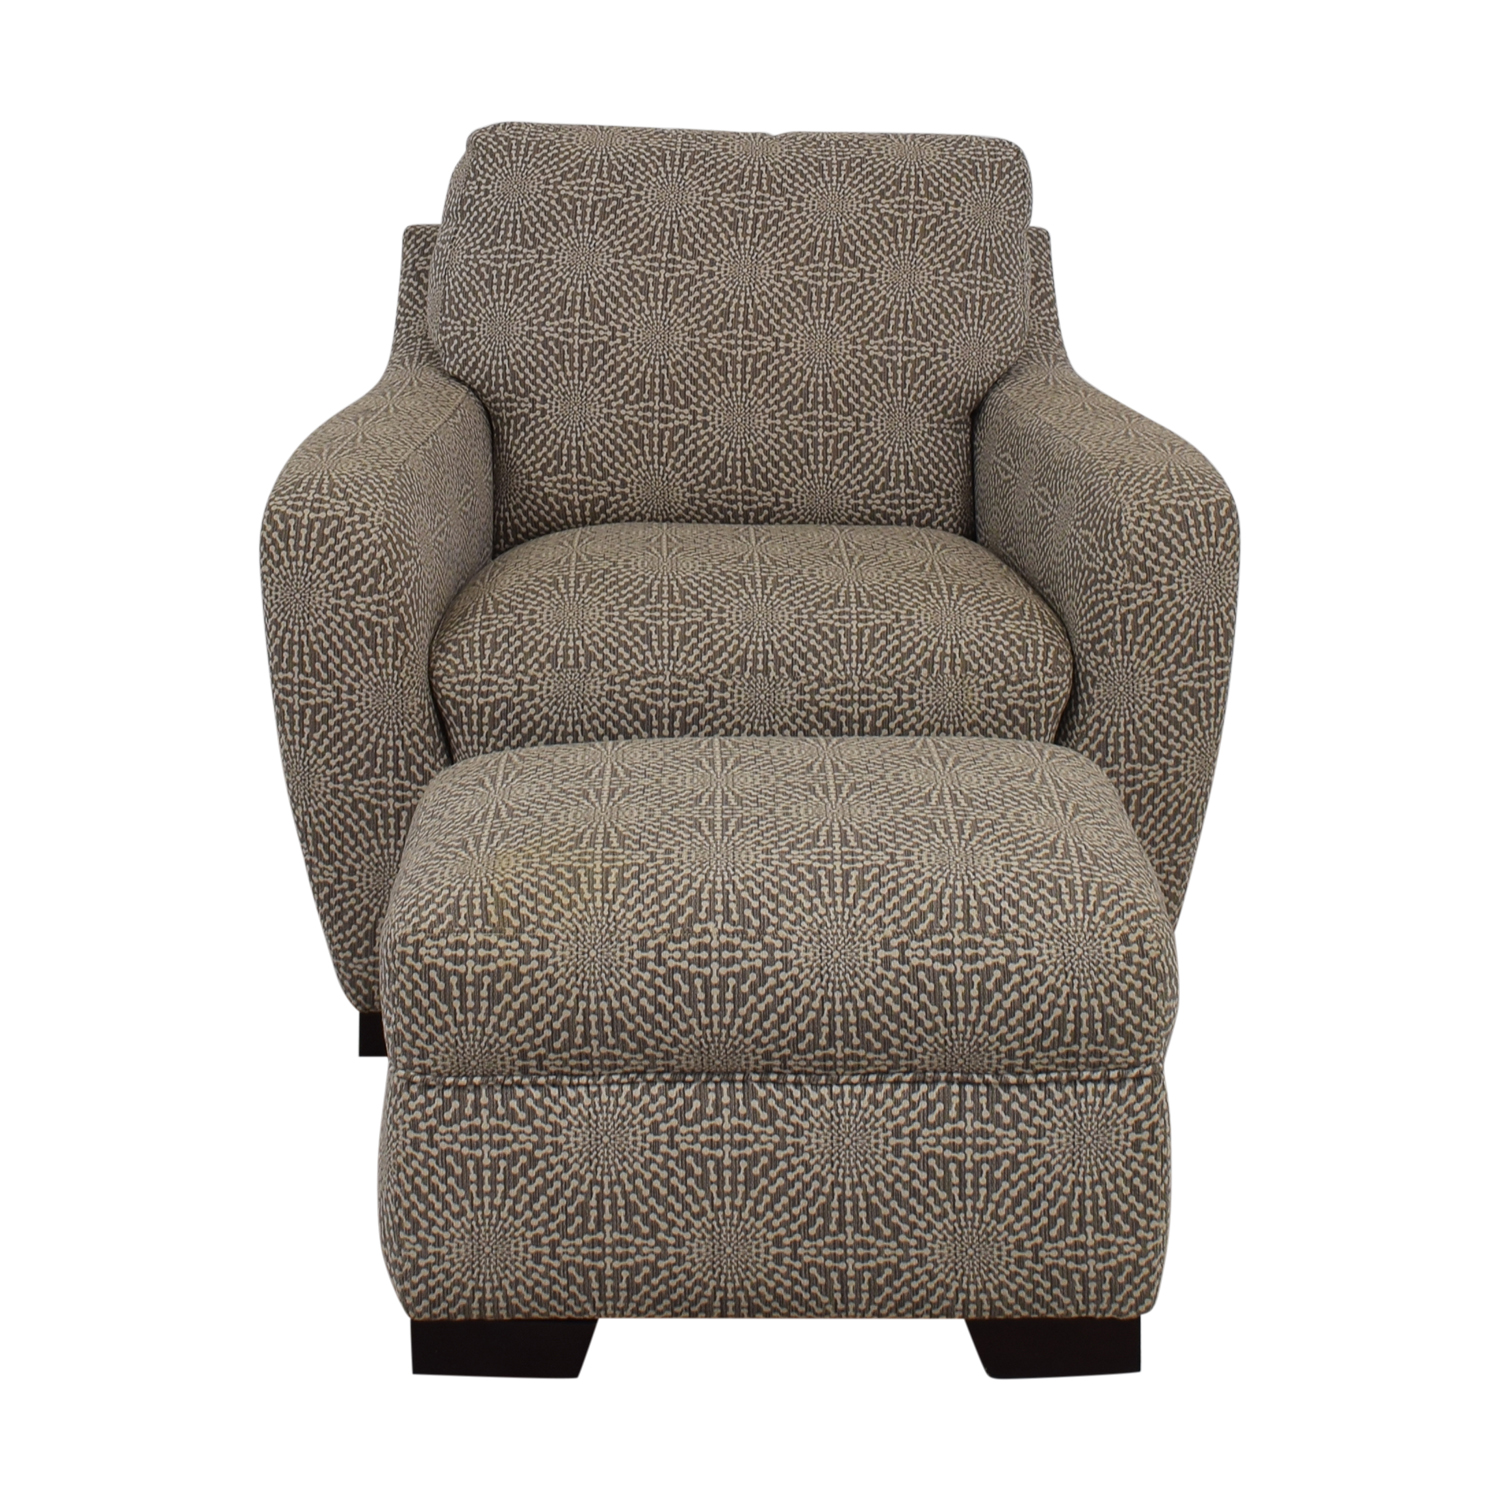 brown accent chair with ottoman outdoor swing nz 54 off raymour flanigan beige and